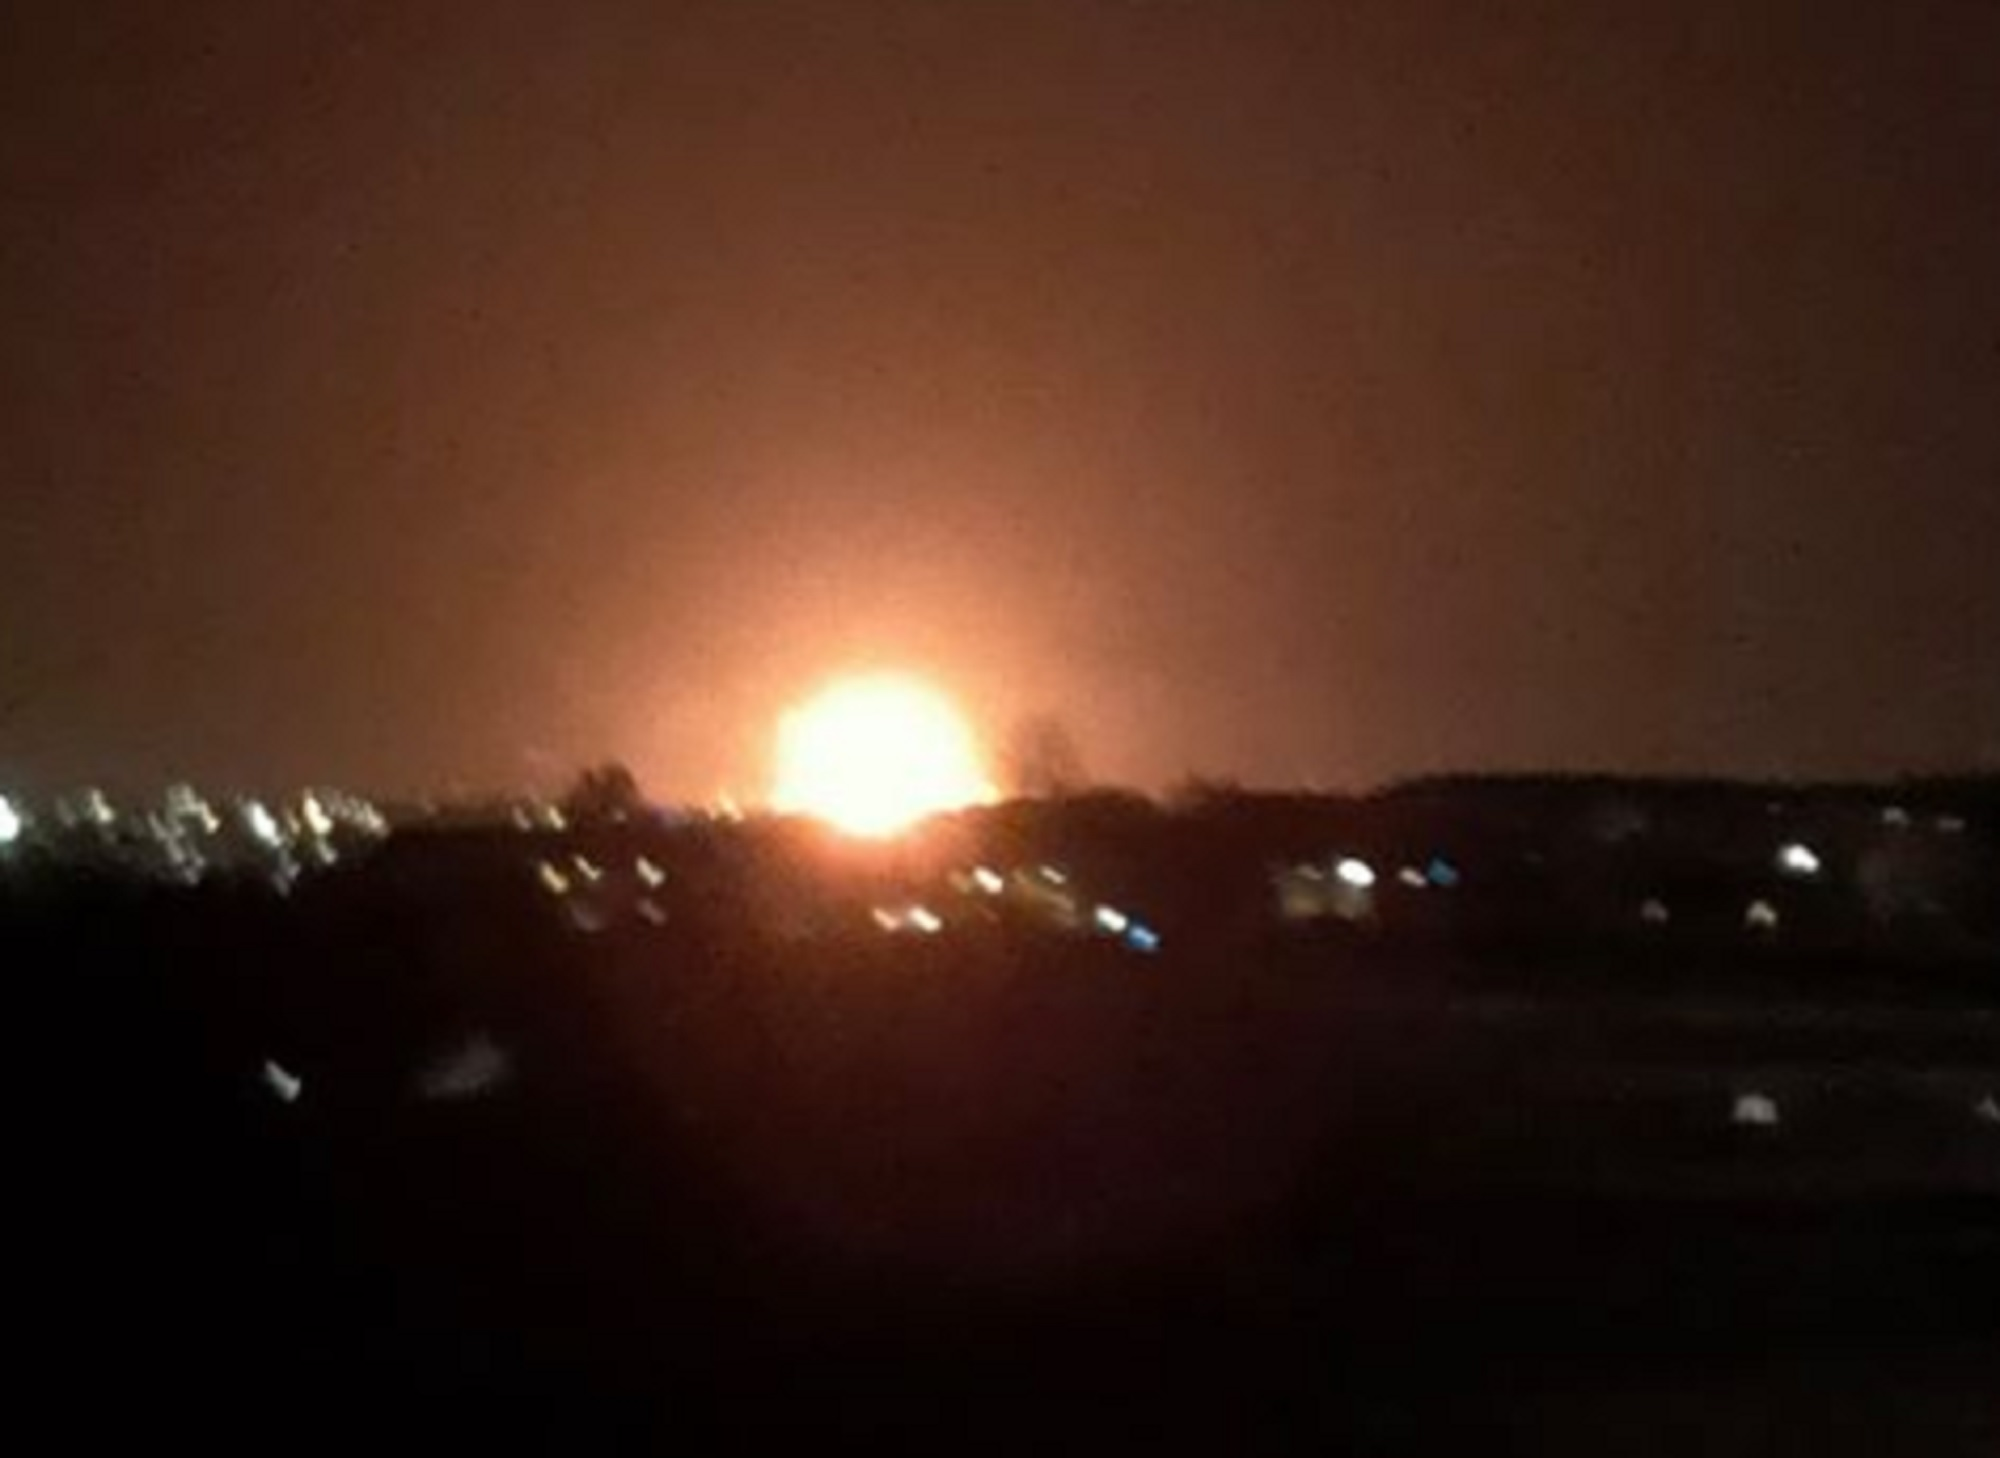 Exxonmobil under fire as SEPA probes flaring at Fife chemical plant